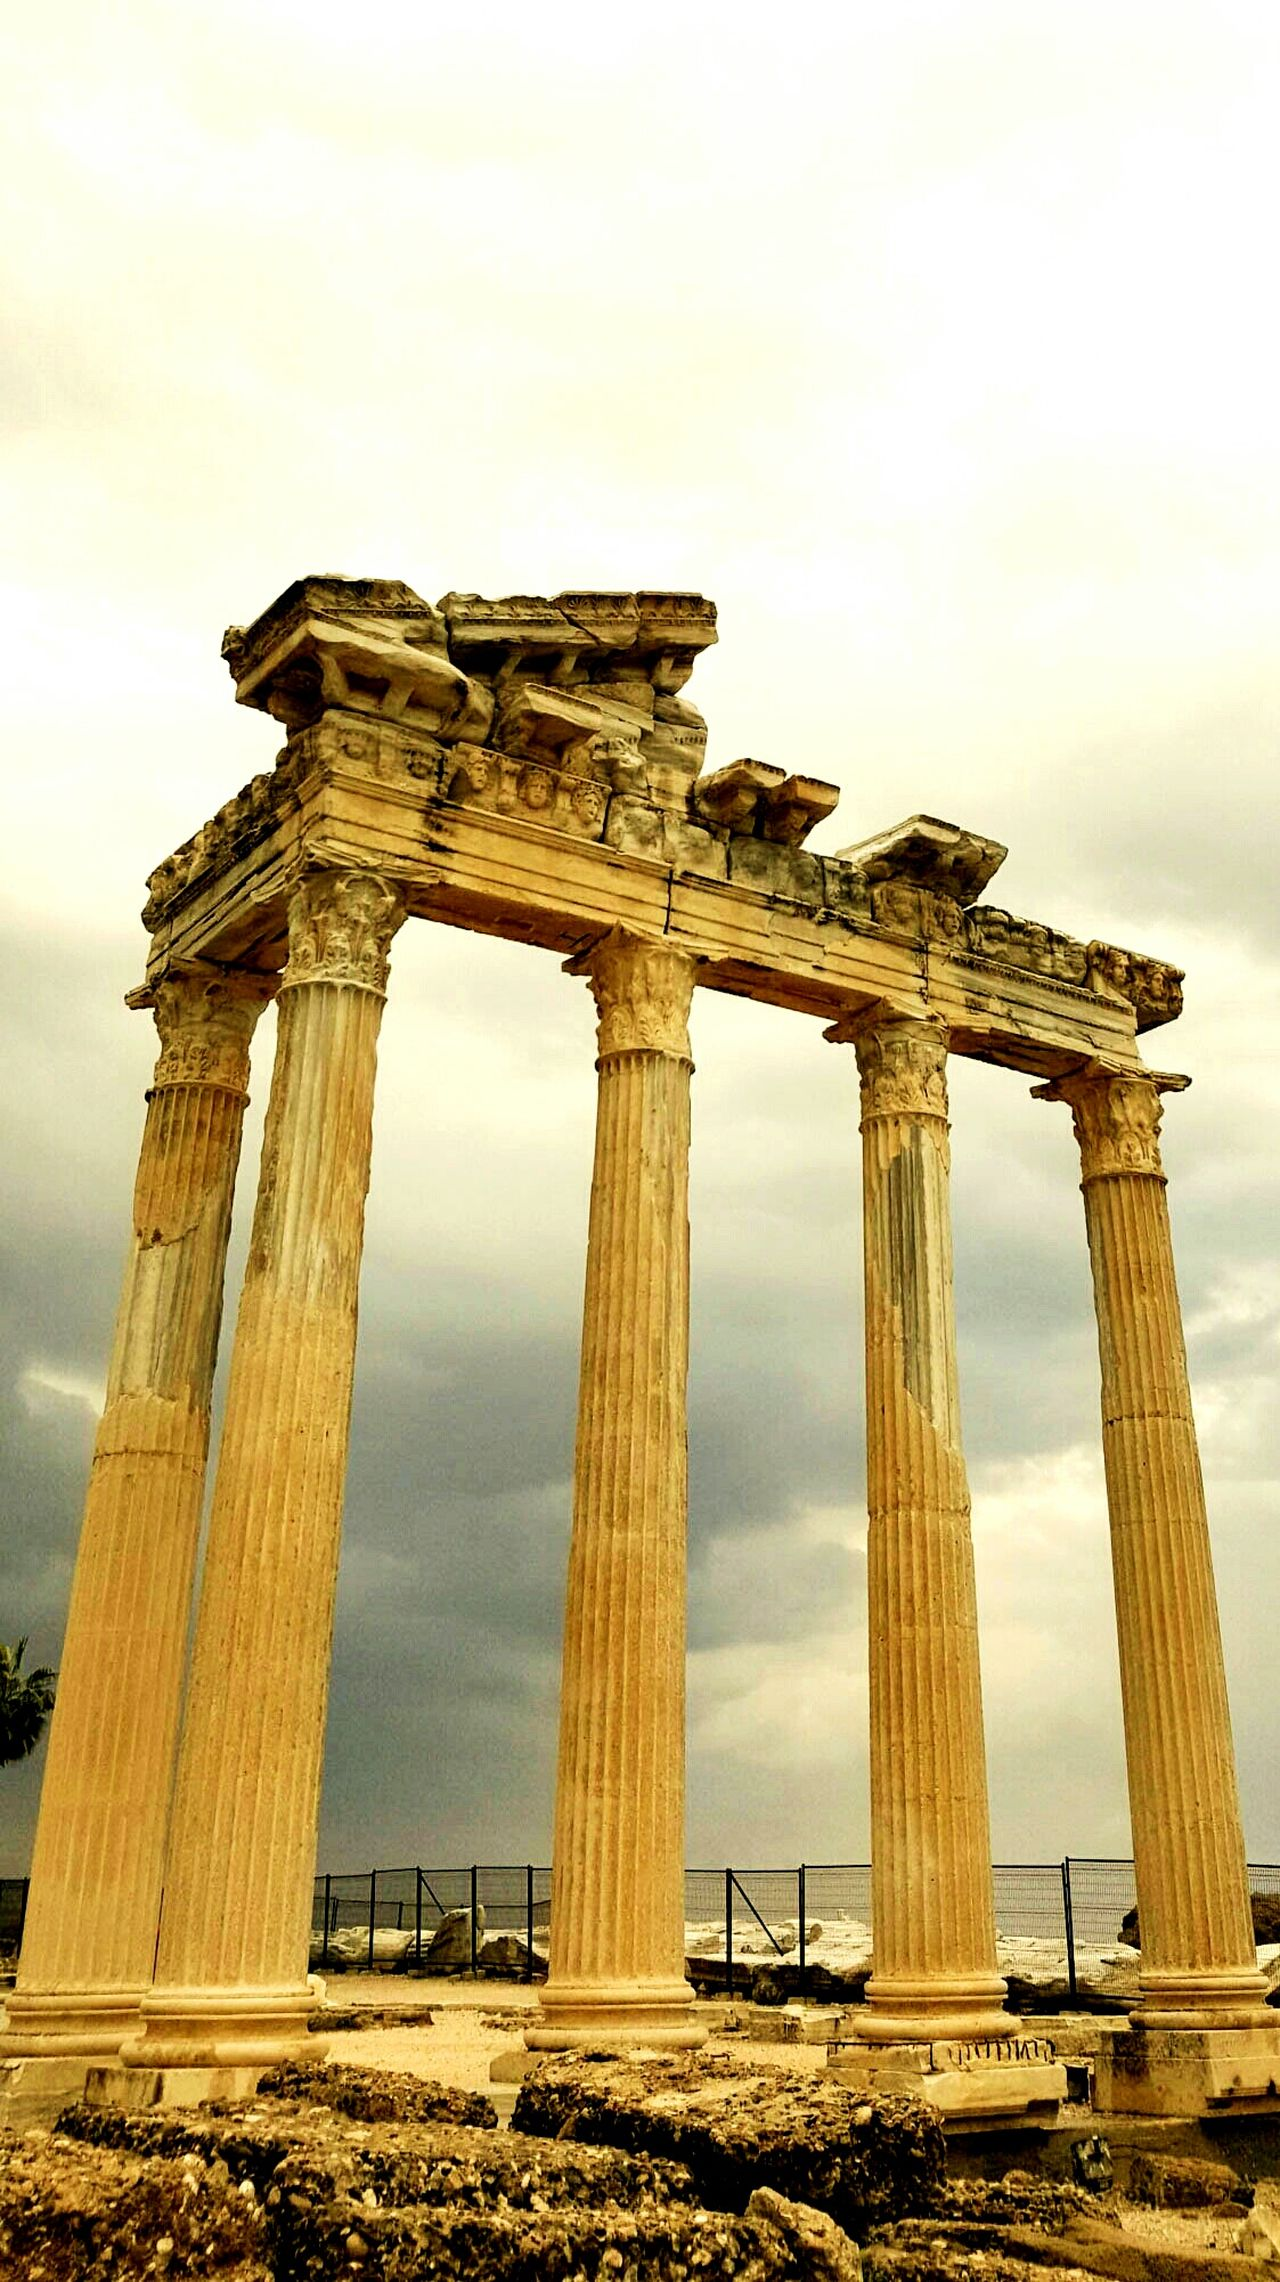 Temple Ancient Architecture Clouds Moody Sky Moody Columns And Pillars Column Capitals Greek Roman Marble Ruins Decay Old Falling Apart Turkey Side Appolo